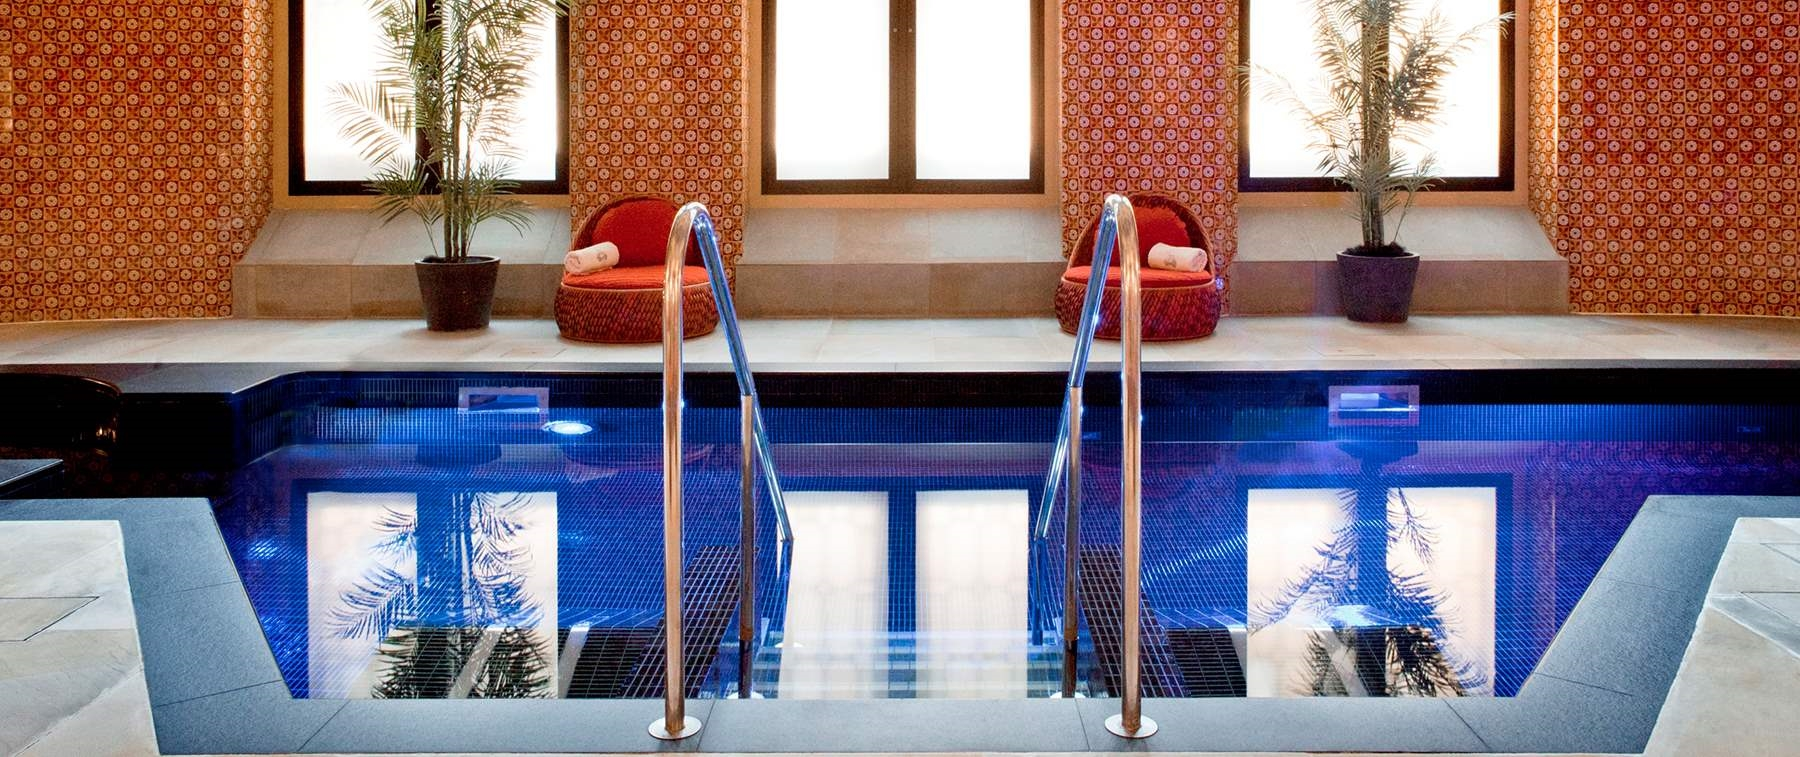 Fitness Center - St. Pancras Spa